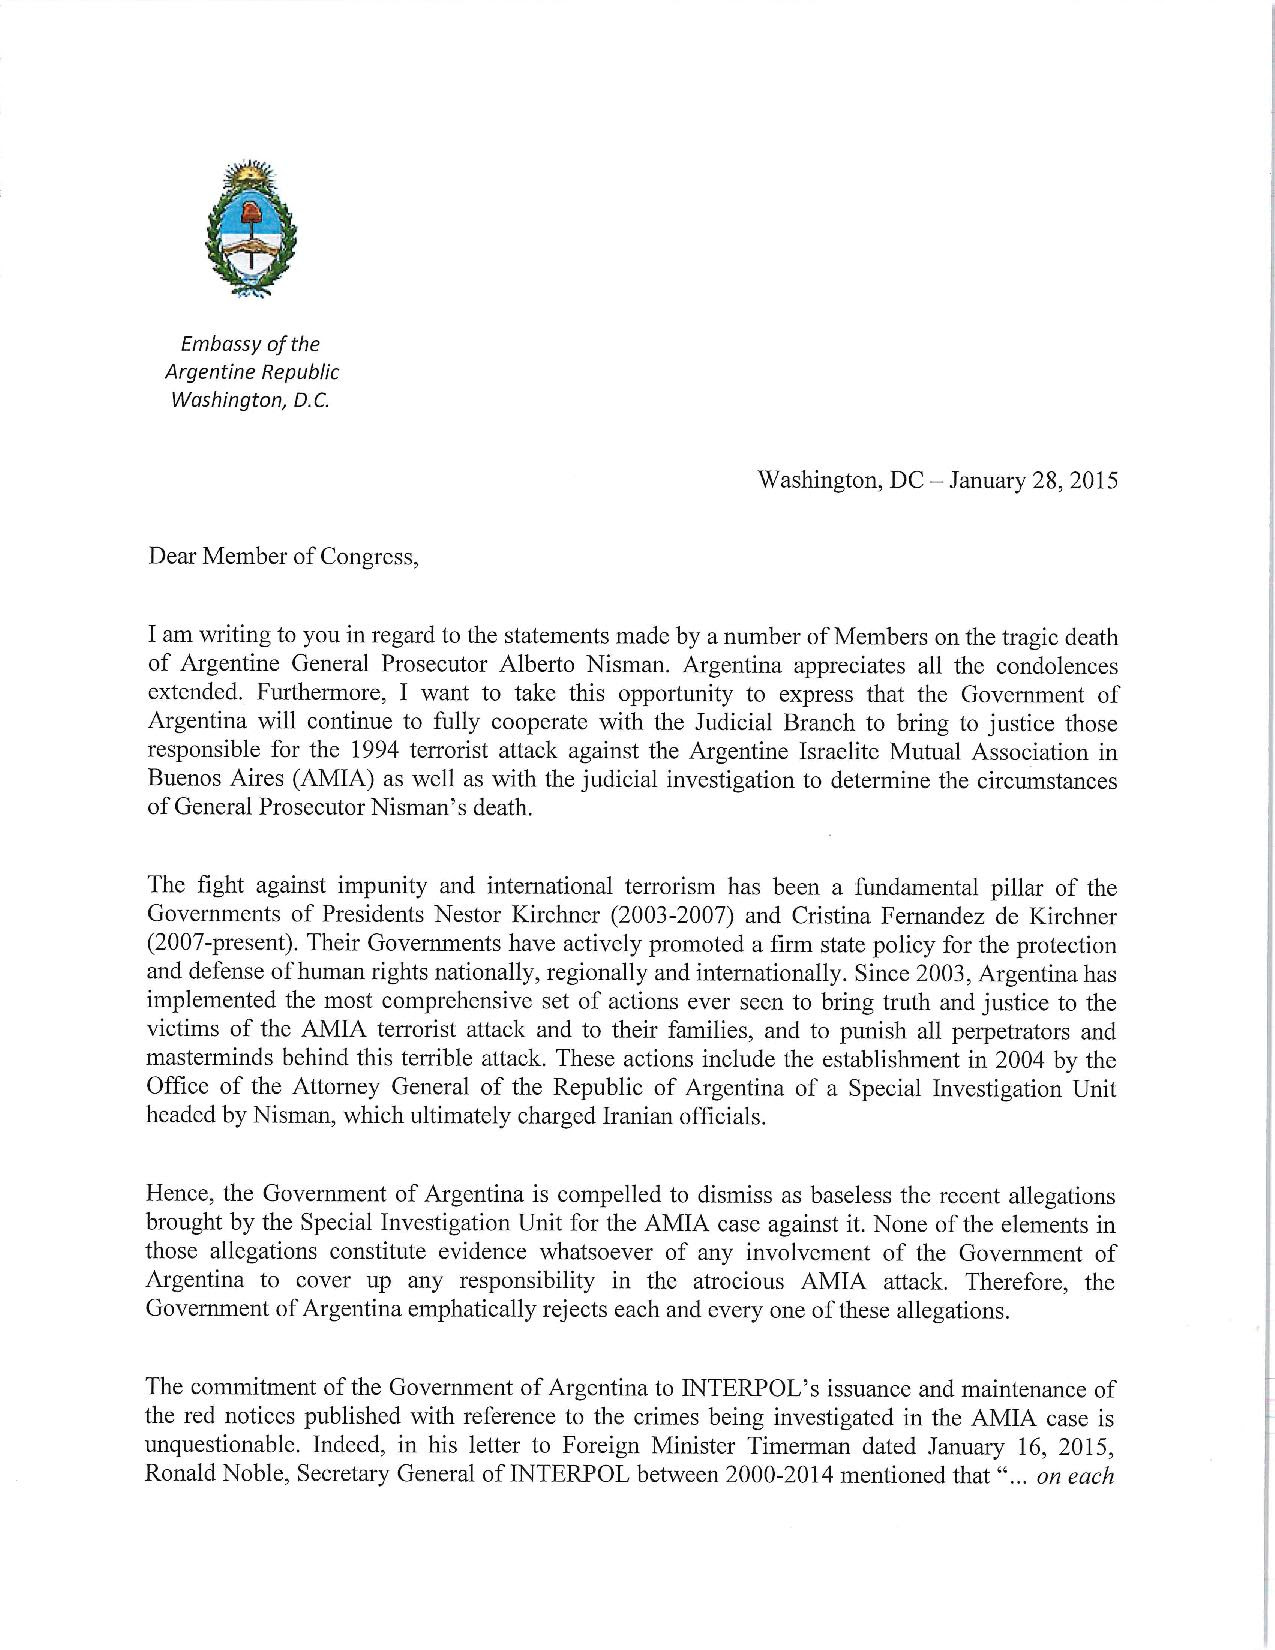 Letter_from_Argentine_Ambassador__H.E._Cecilia_Nahon__regarding_the_AMIA_case_and_the_death_of_Argentine_General_Prosecutor_Alberto_Nisman-page-001